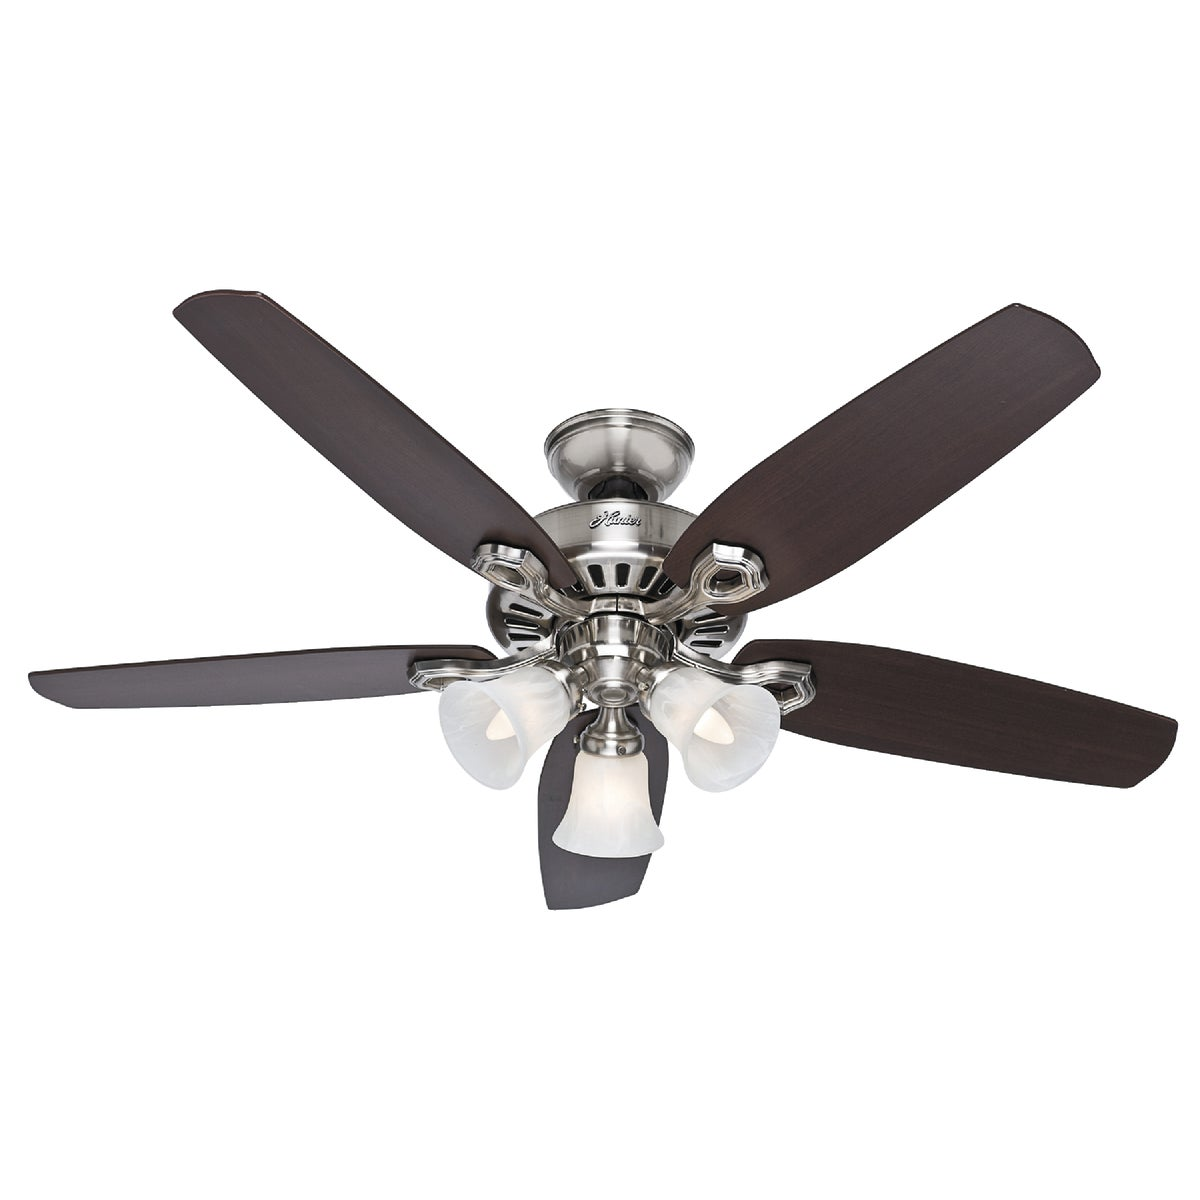 "52"" 5-BLADE CEILING FAN - 26406 by Hunter Fan Co"